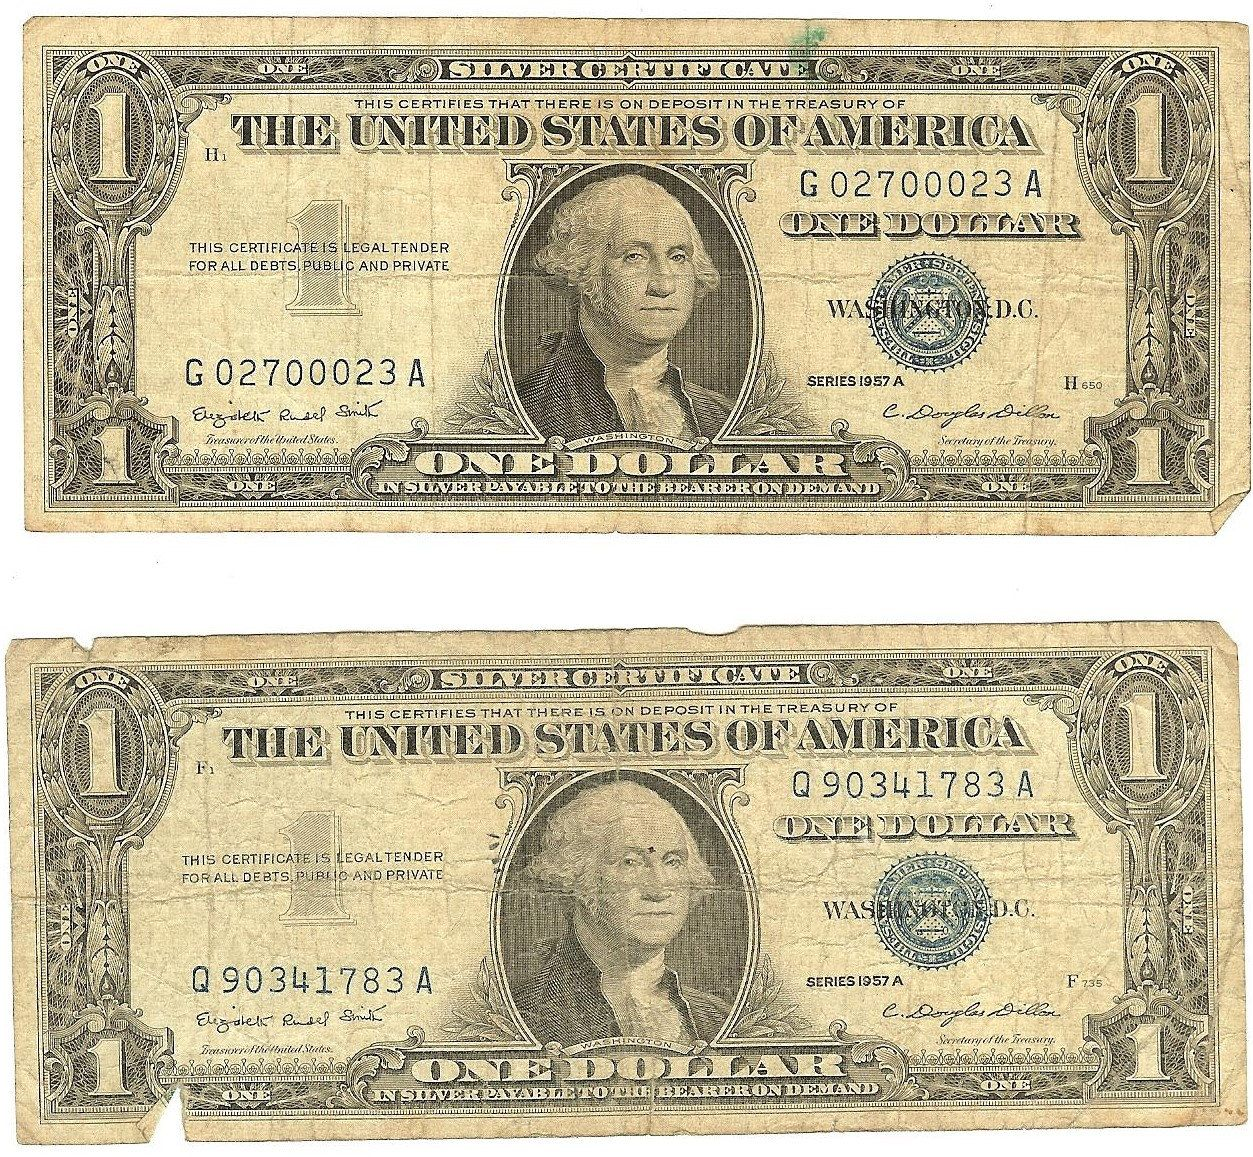 Vintage 1957 Silver Certificates One Dollar Bills Old Money 59 Year